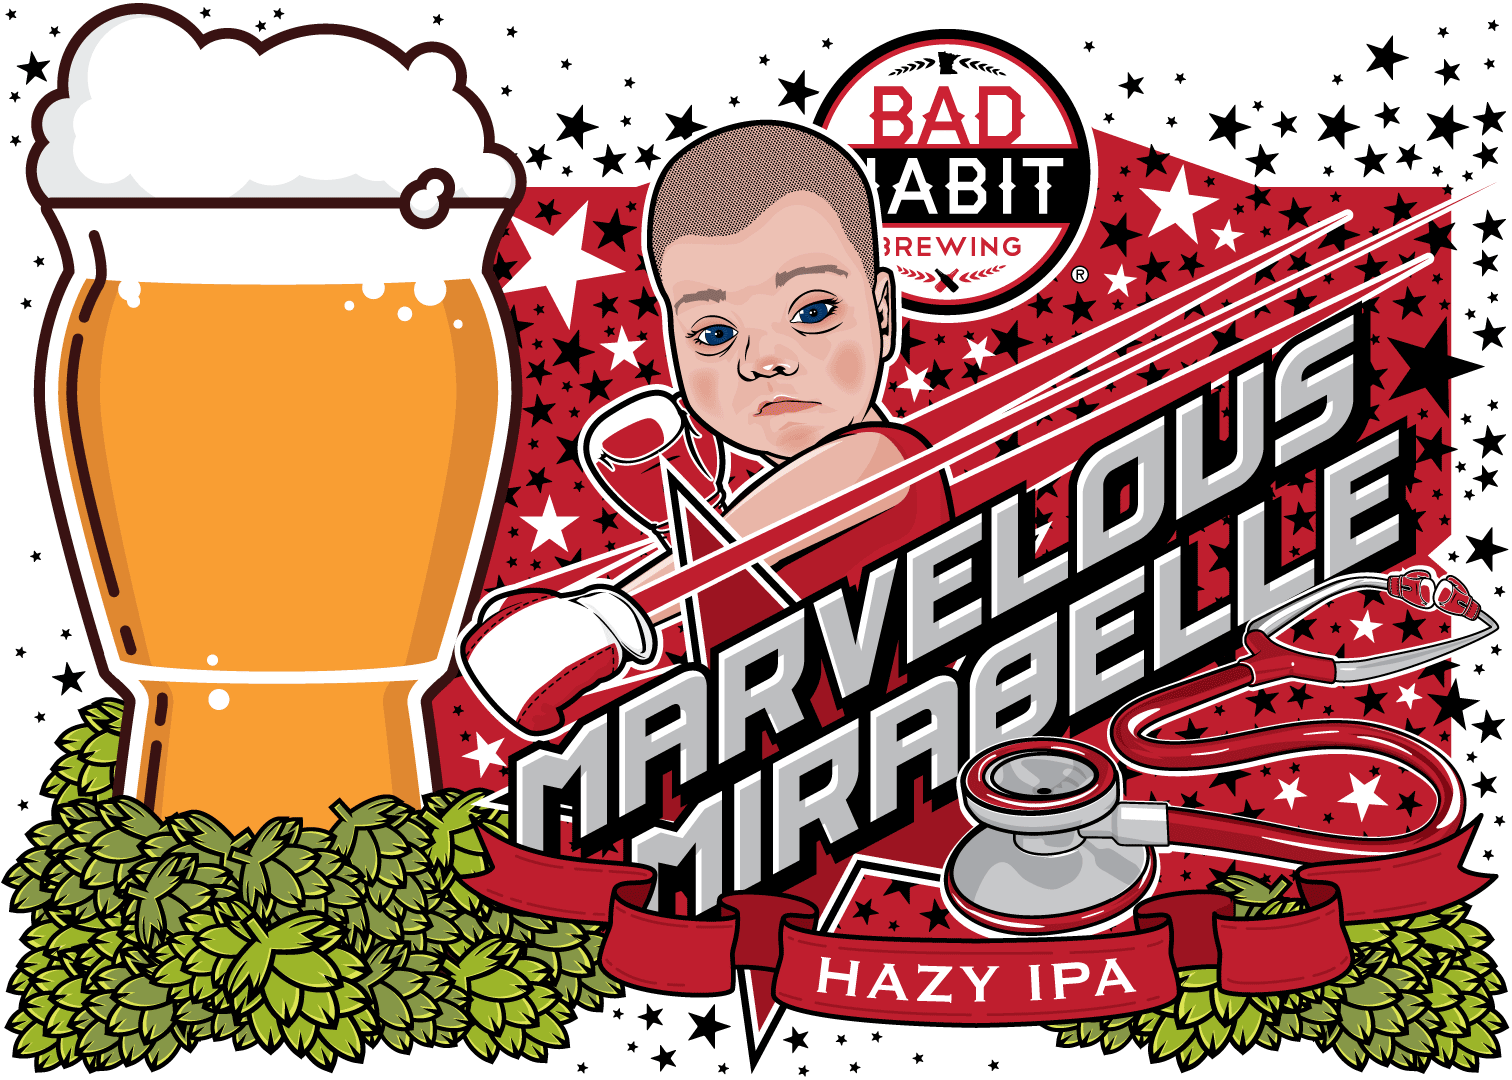 MARVELOUSMIRABELLE - American Hazy IPA | 6.9% ABVThis delicious IPA has used it's knockout combination of Amarillo, Citra, Simco and Calypso hops and lactose to become one of our main contenders. At 6.9% abv it is a heavy hitter and with it's pilsner malt it has a clean, refreshing finish. Originally brewed as a fundraiser for the fight against Zelleweger Syndrome, this beer has a lot of heart. It has become a crowd favorite, and to give everyone a shot at this brewser, we had to brew a rebatch. If you think you're a contender, order a pint and Marvelous Mirabelle will knock your socks off.